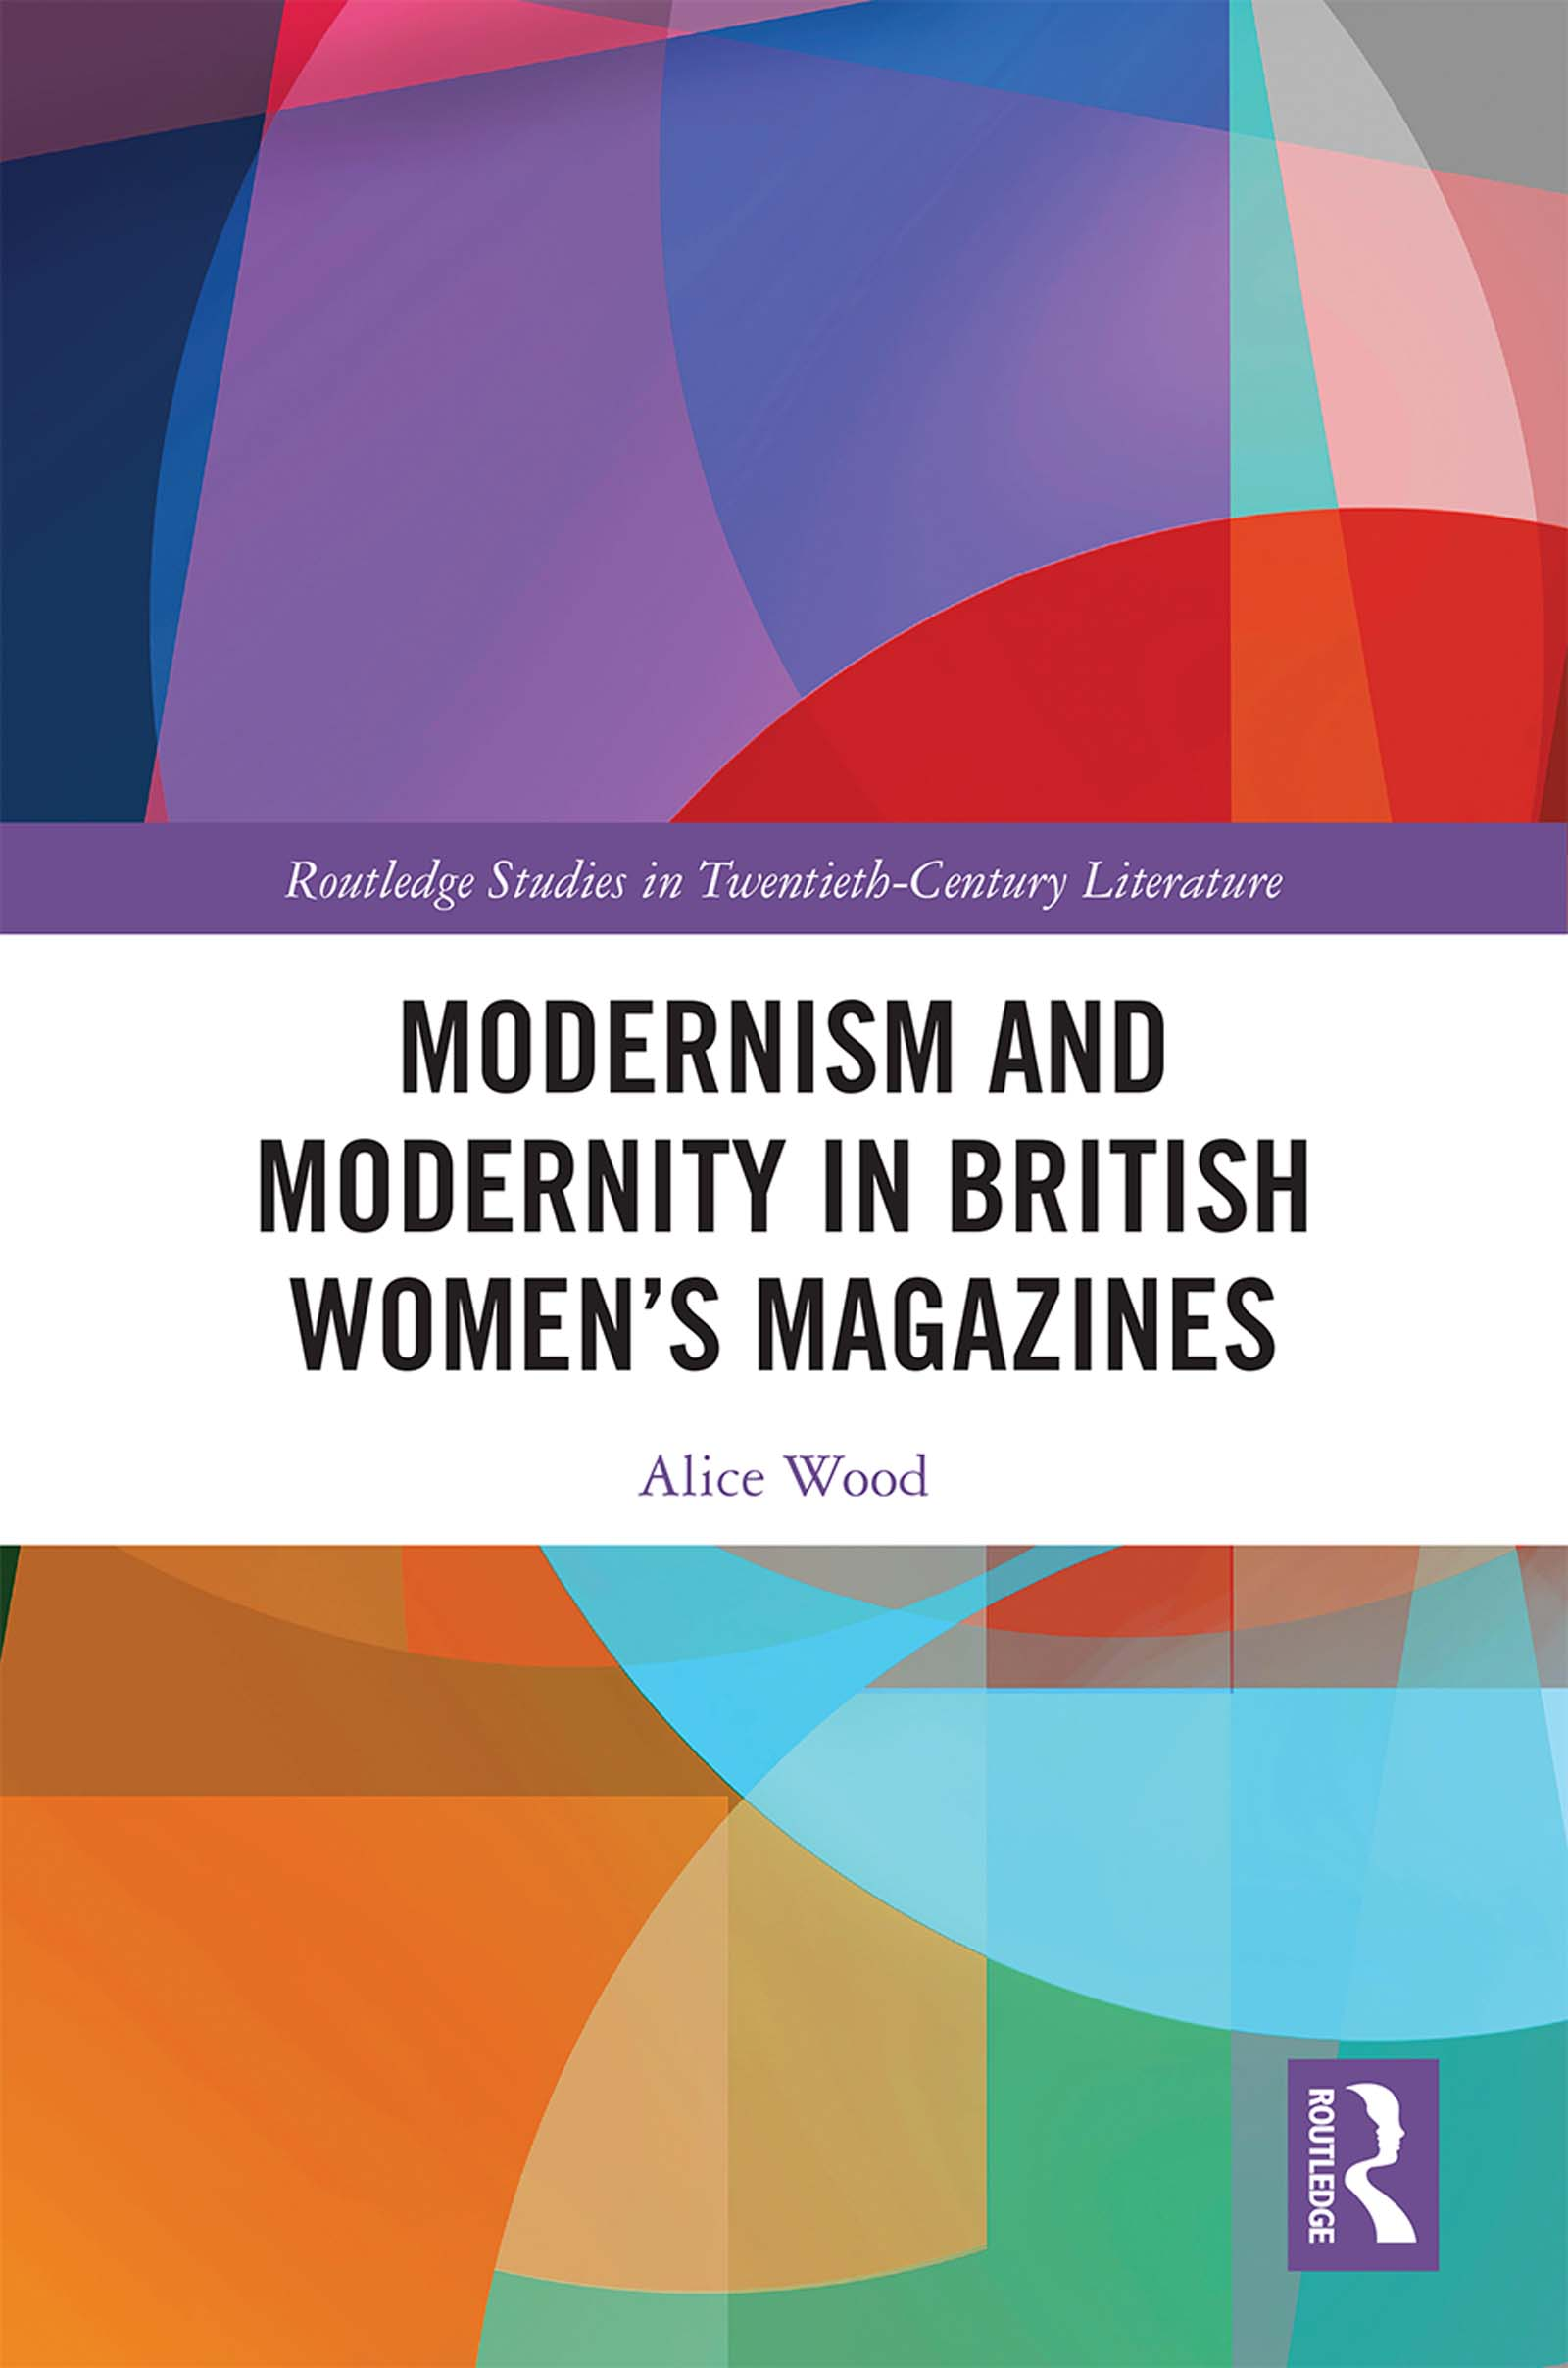 Modernism and Modernity in British Women's Magazines